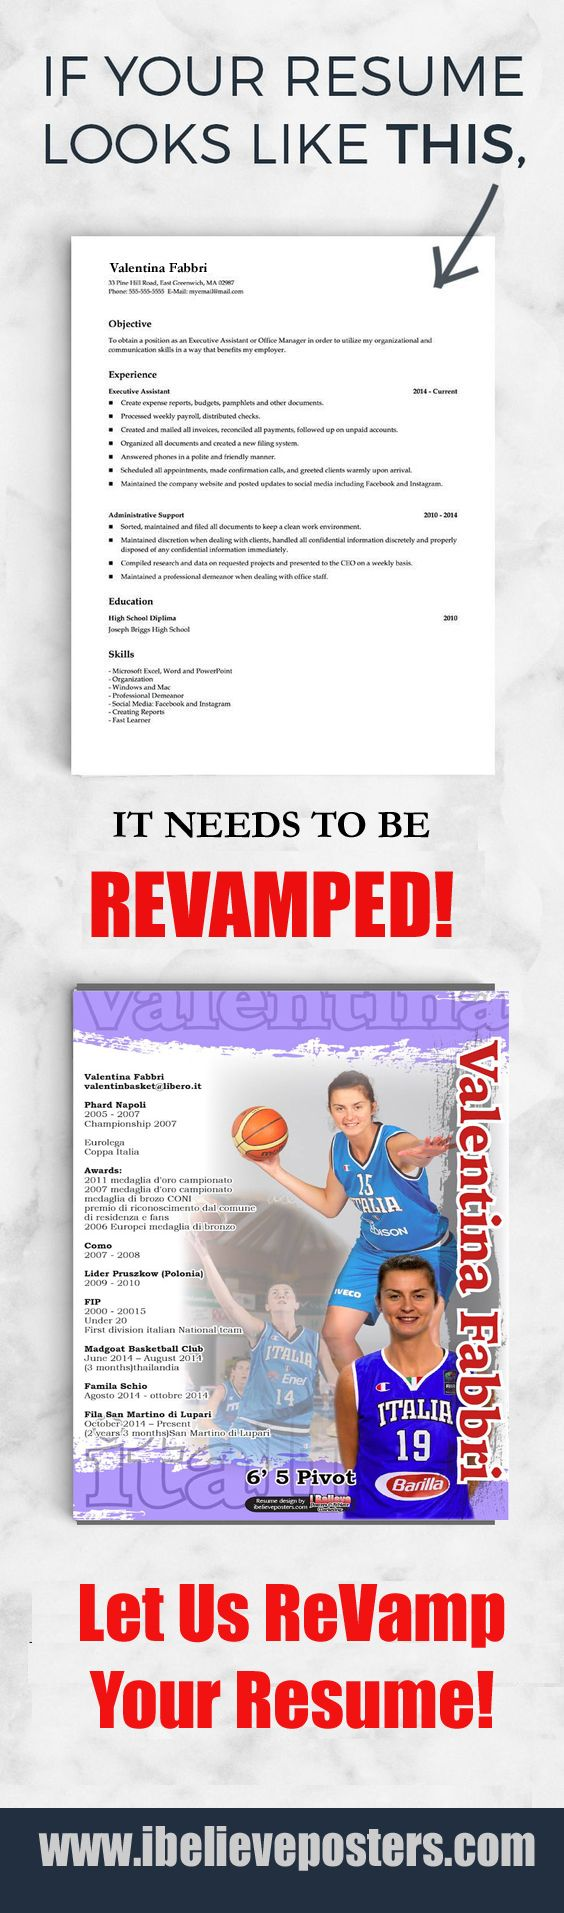 97 Best Sports Resumes Recruiting Flyers Images On Pinterest